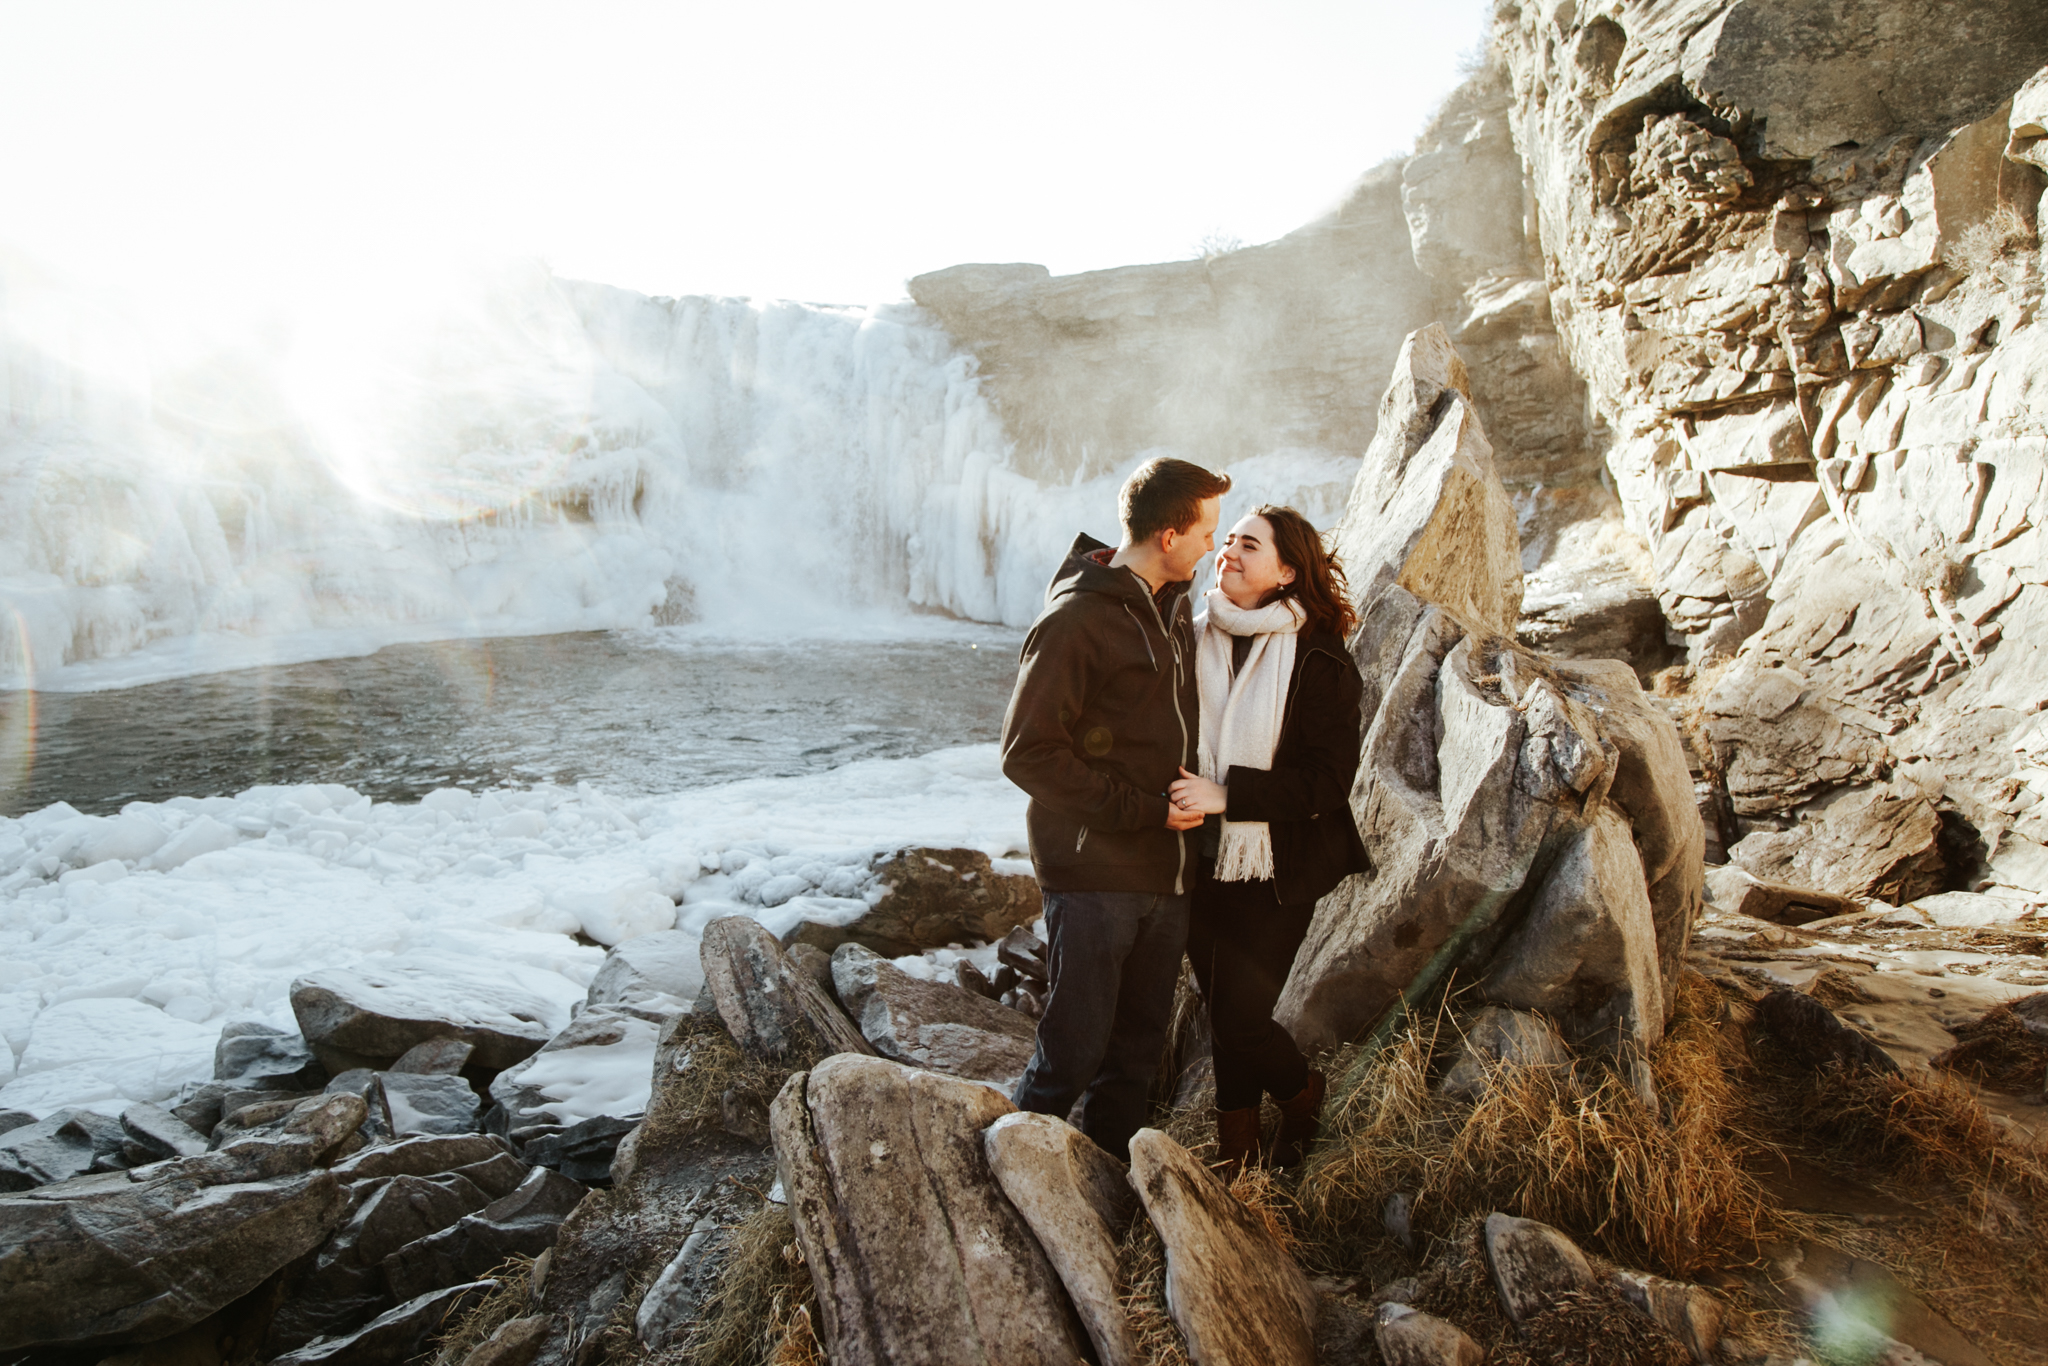 lethbridge-photographer-love-and-be-loved-photography-lundbreck-falls-engagement-clarissa-clayton-picture-image-photo--10.jpg